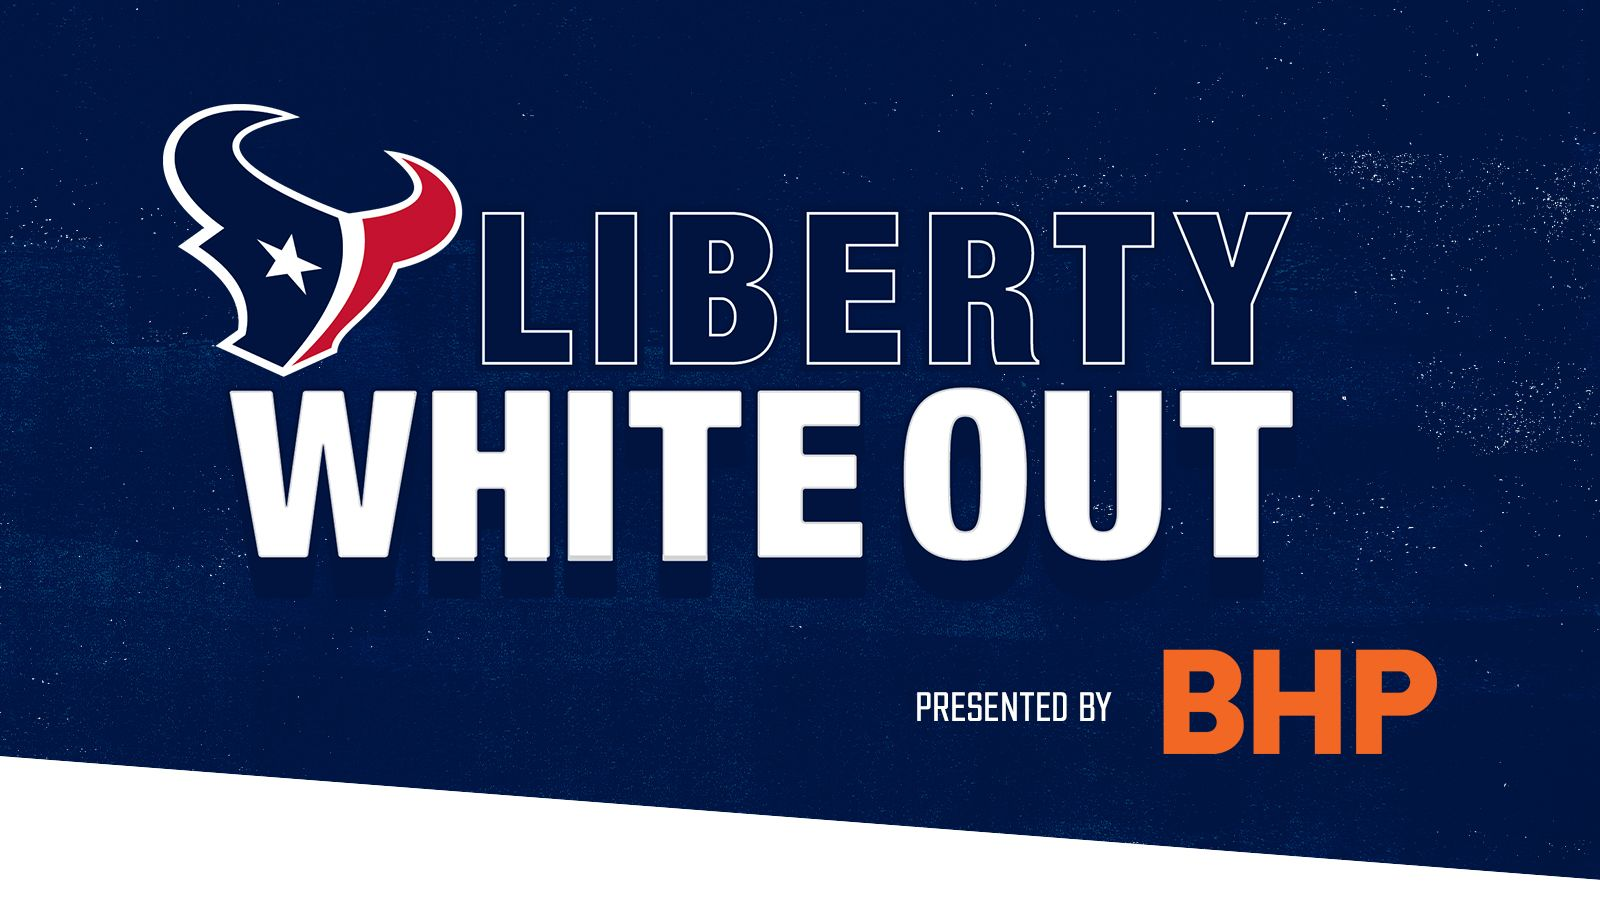 Liberty White Out presented by BHP